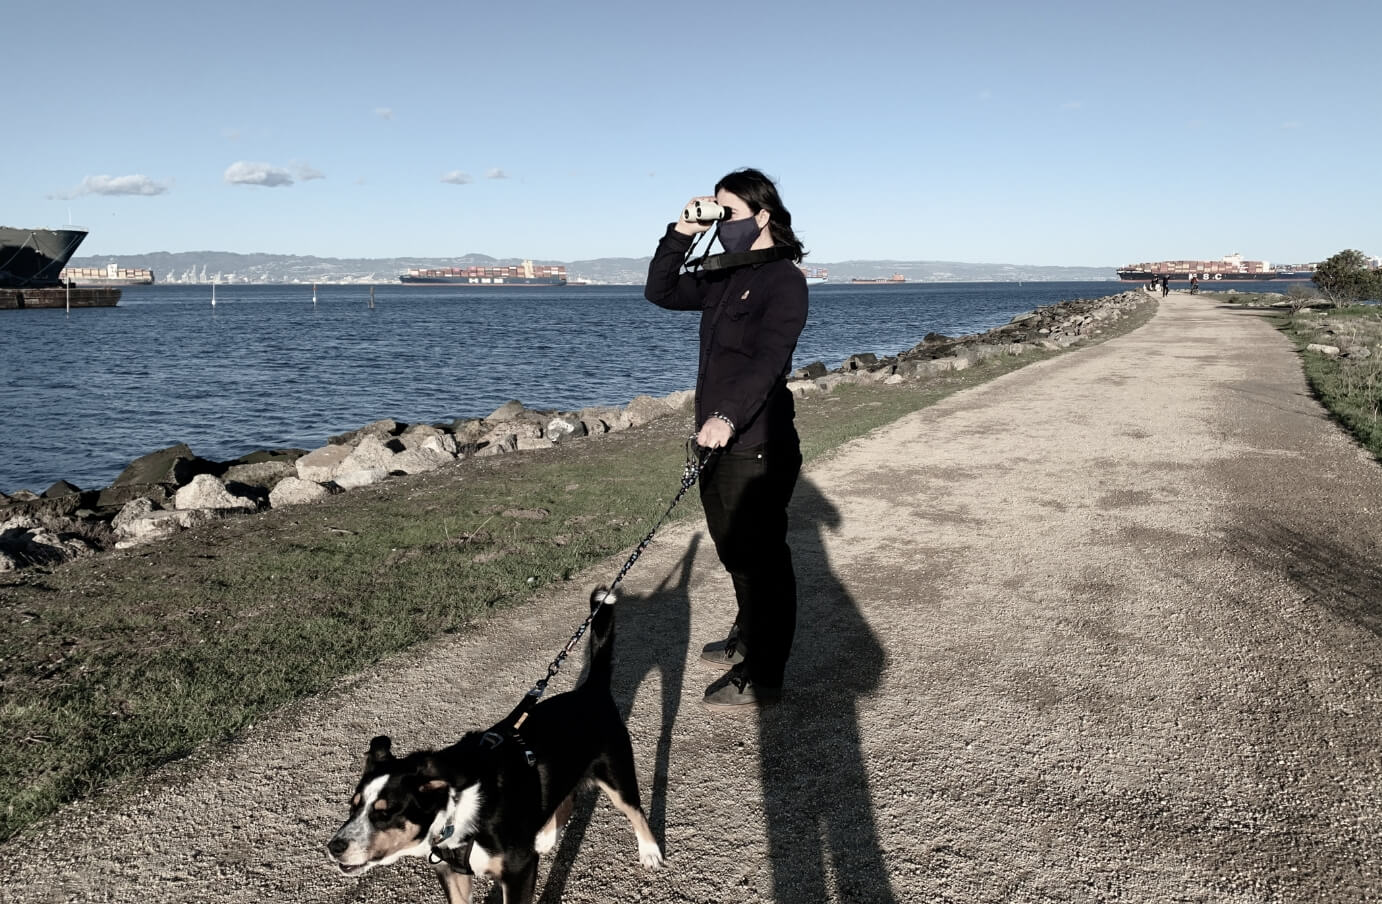 Picture of Lauren and her dog on a hike, holding Nocs and lookint through them across a body of water